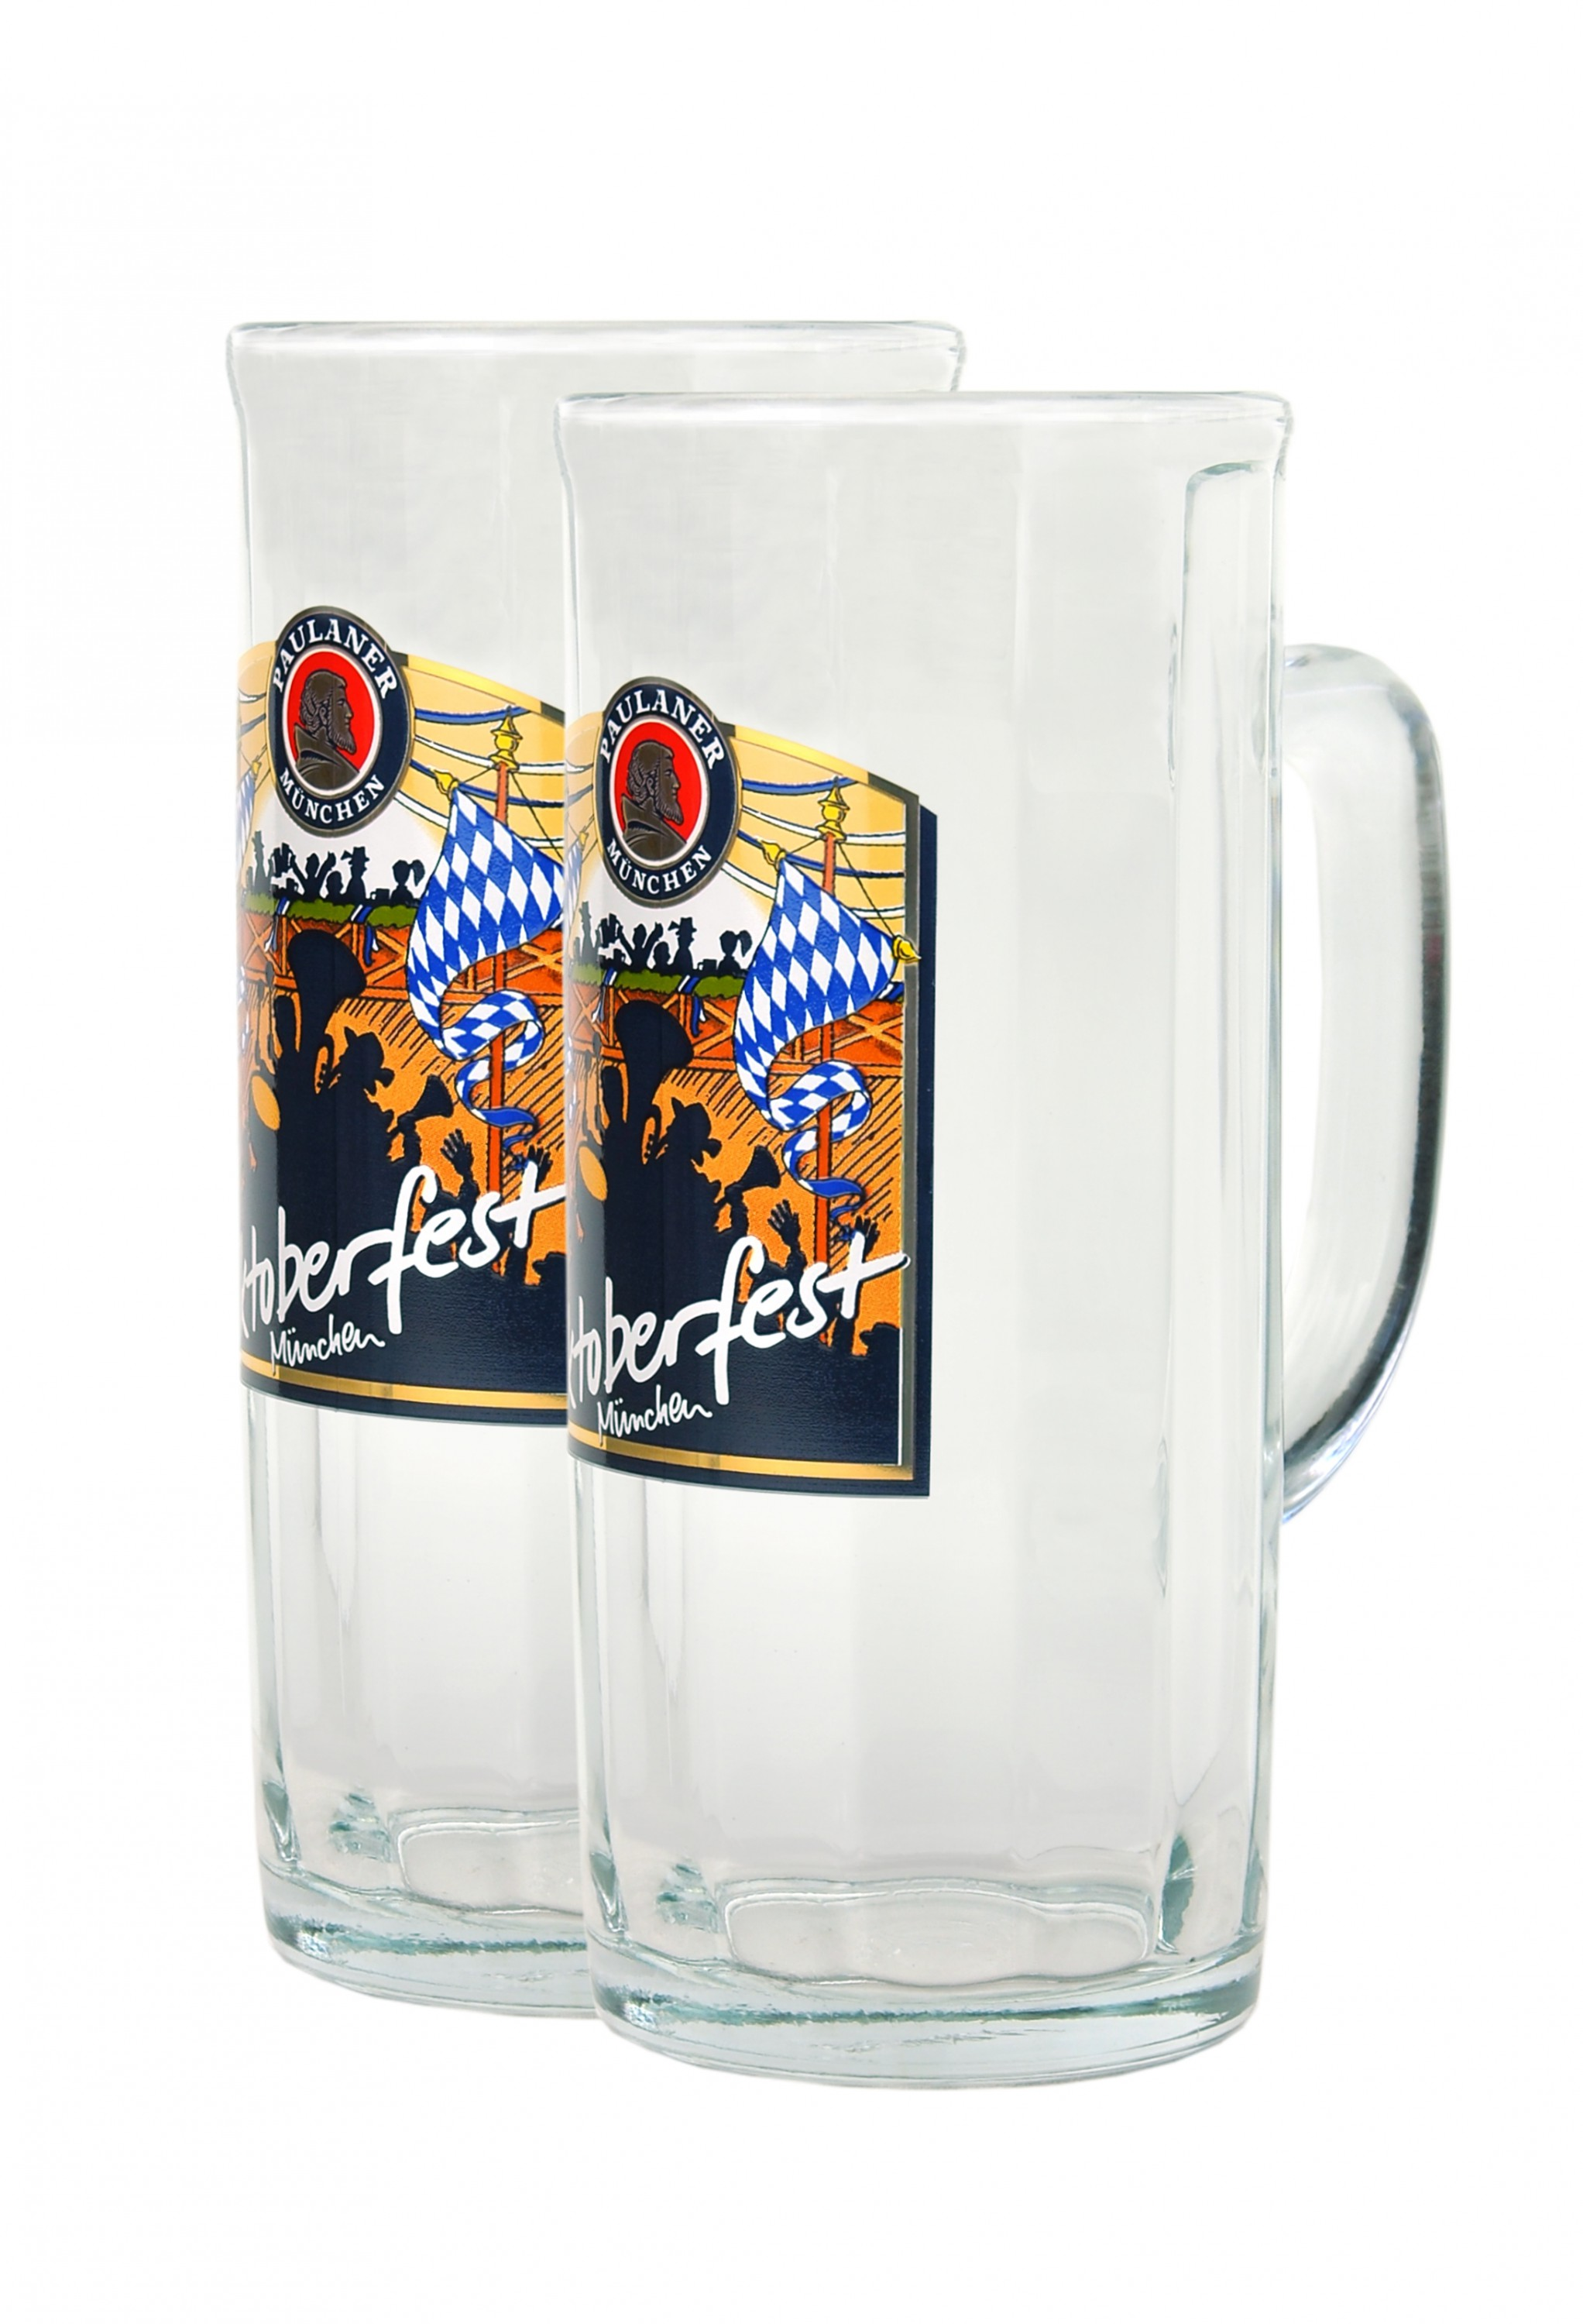 2er set paulaner bierseidel 0 5 liter bierglas bierkrug mit eichstrich und oktoberfest dekor. Black Bedroom Furniture Sets. Home Design Ideas